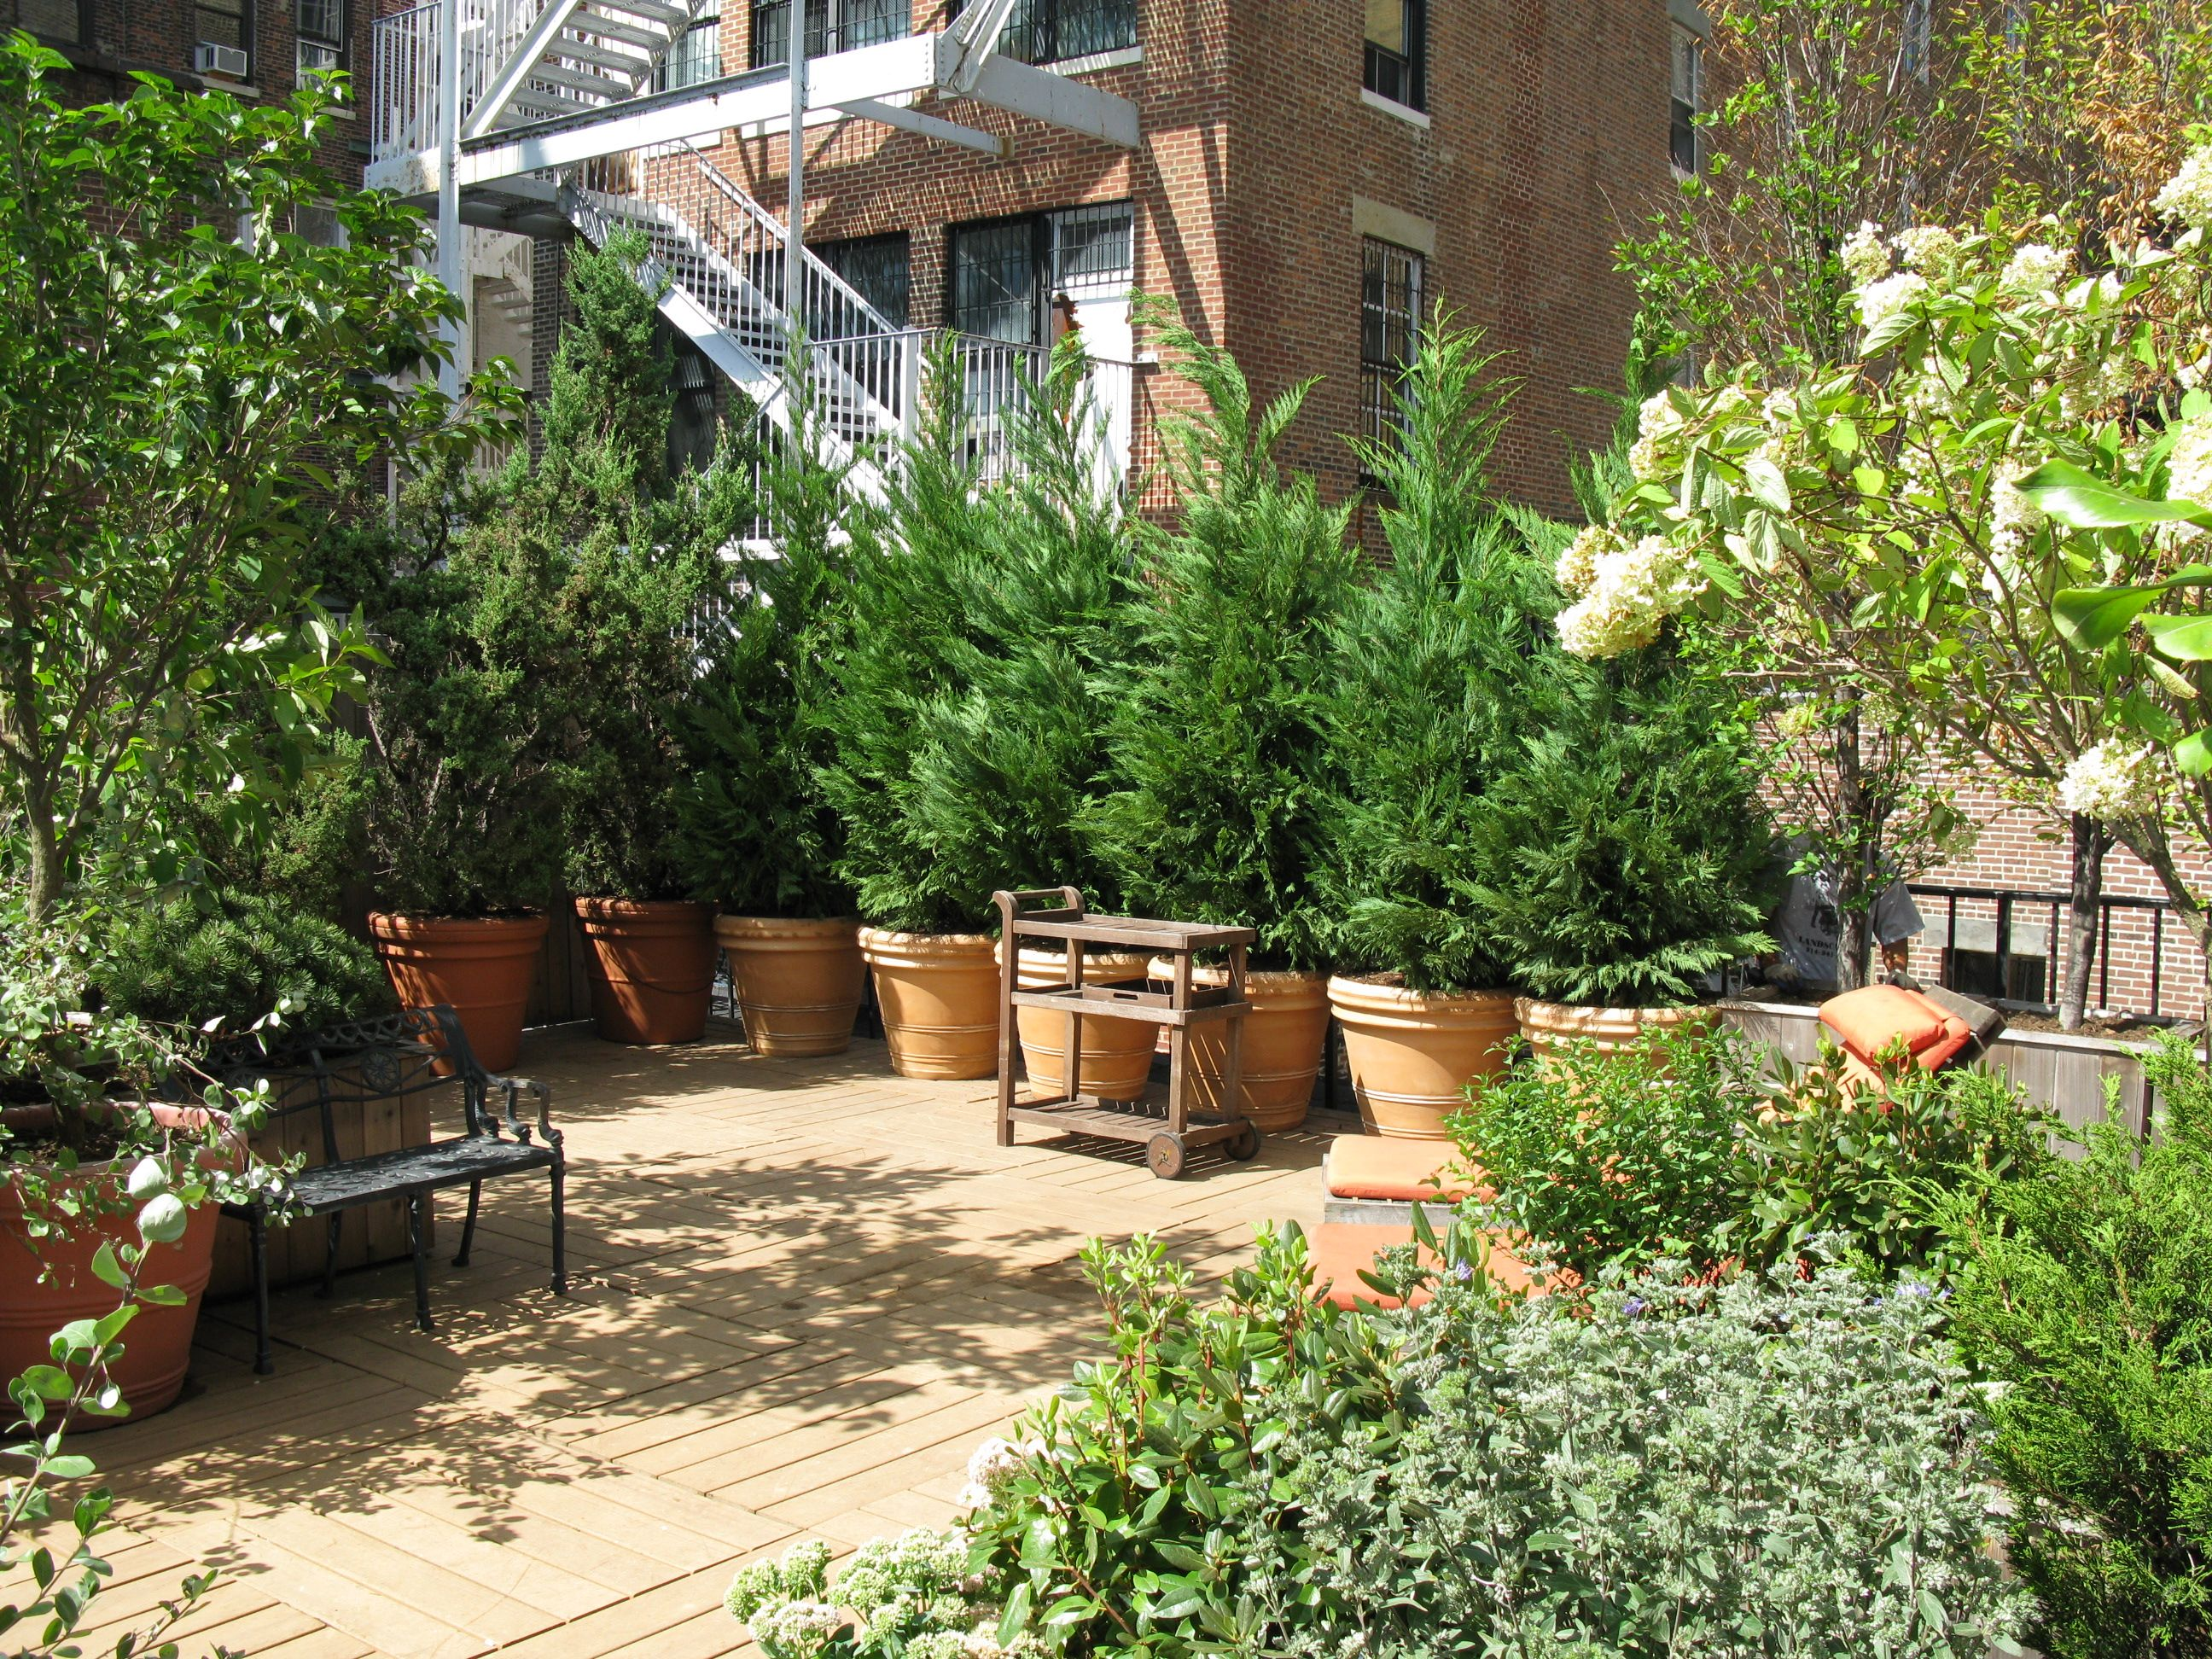 Potted Shrubs help to create a lush green space in the city. #NYC ...